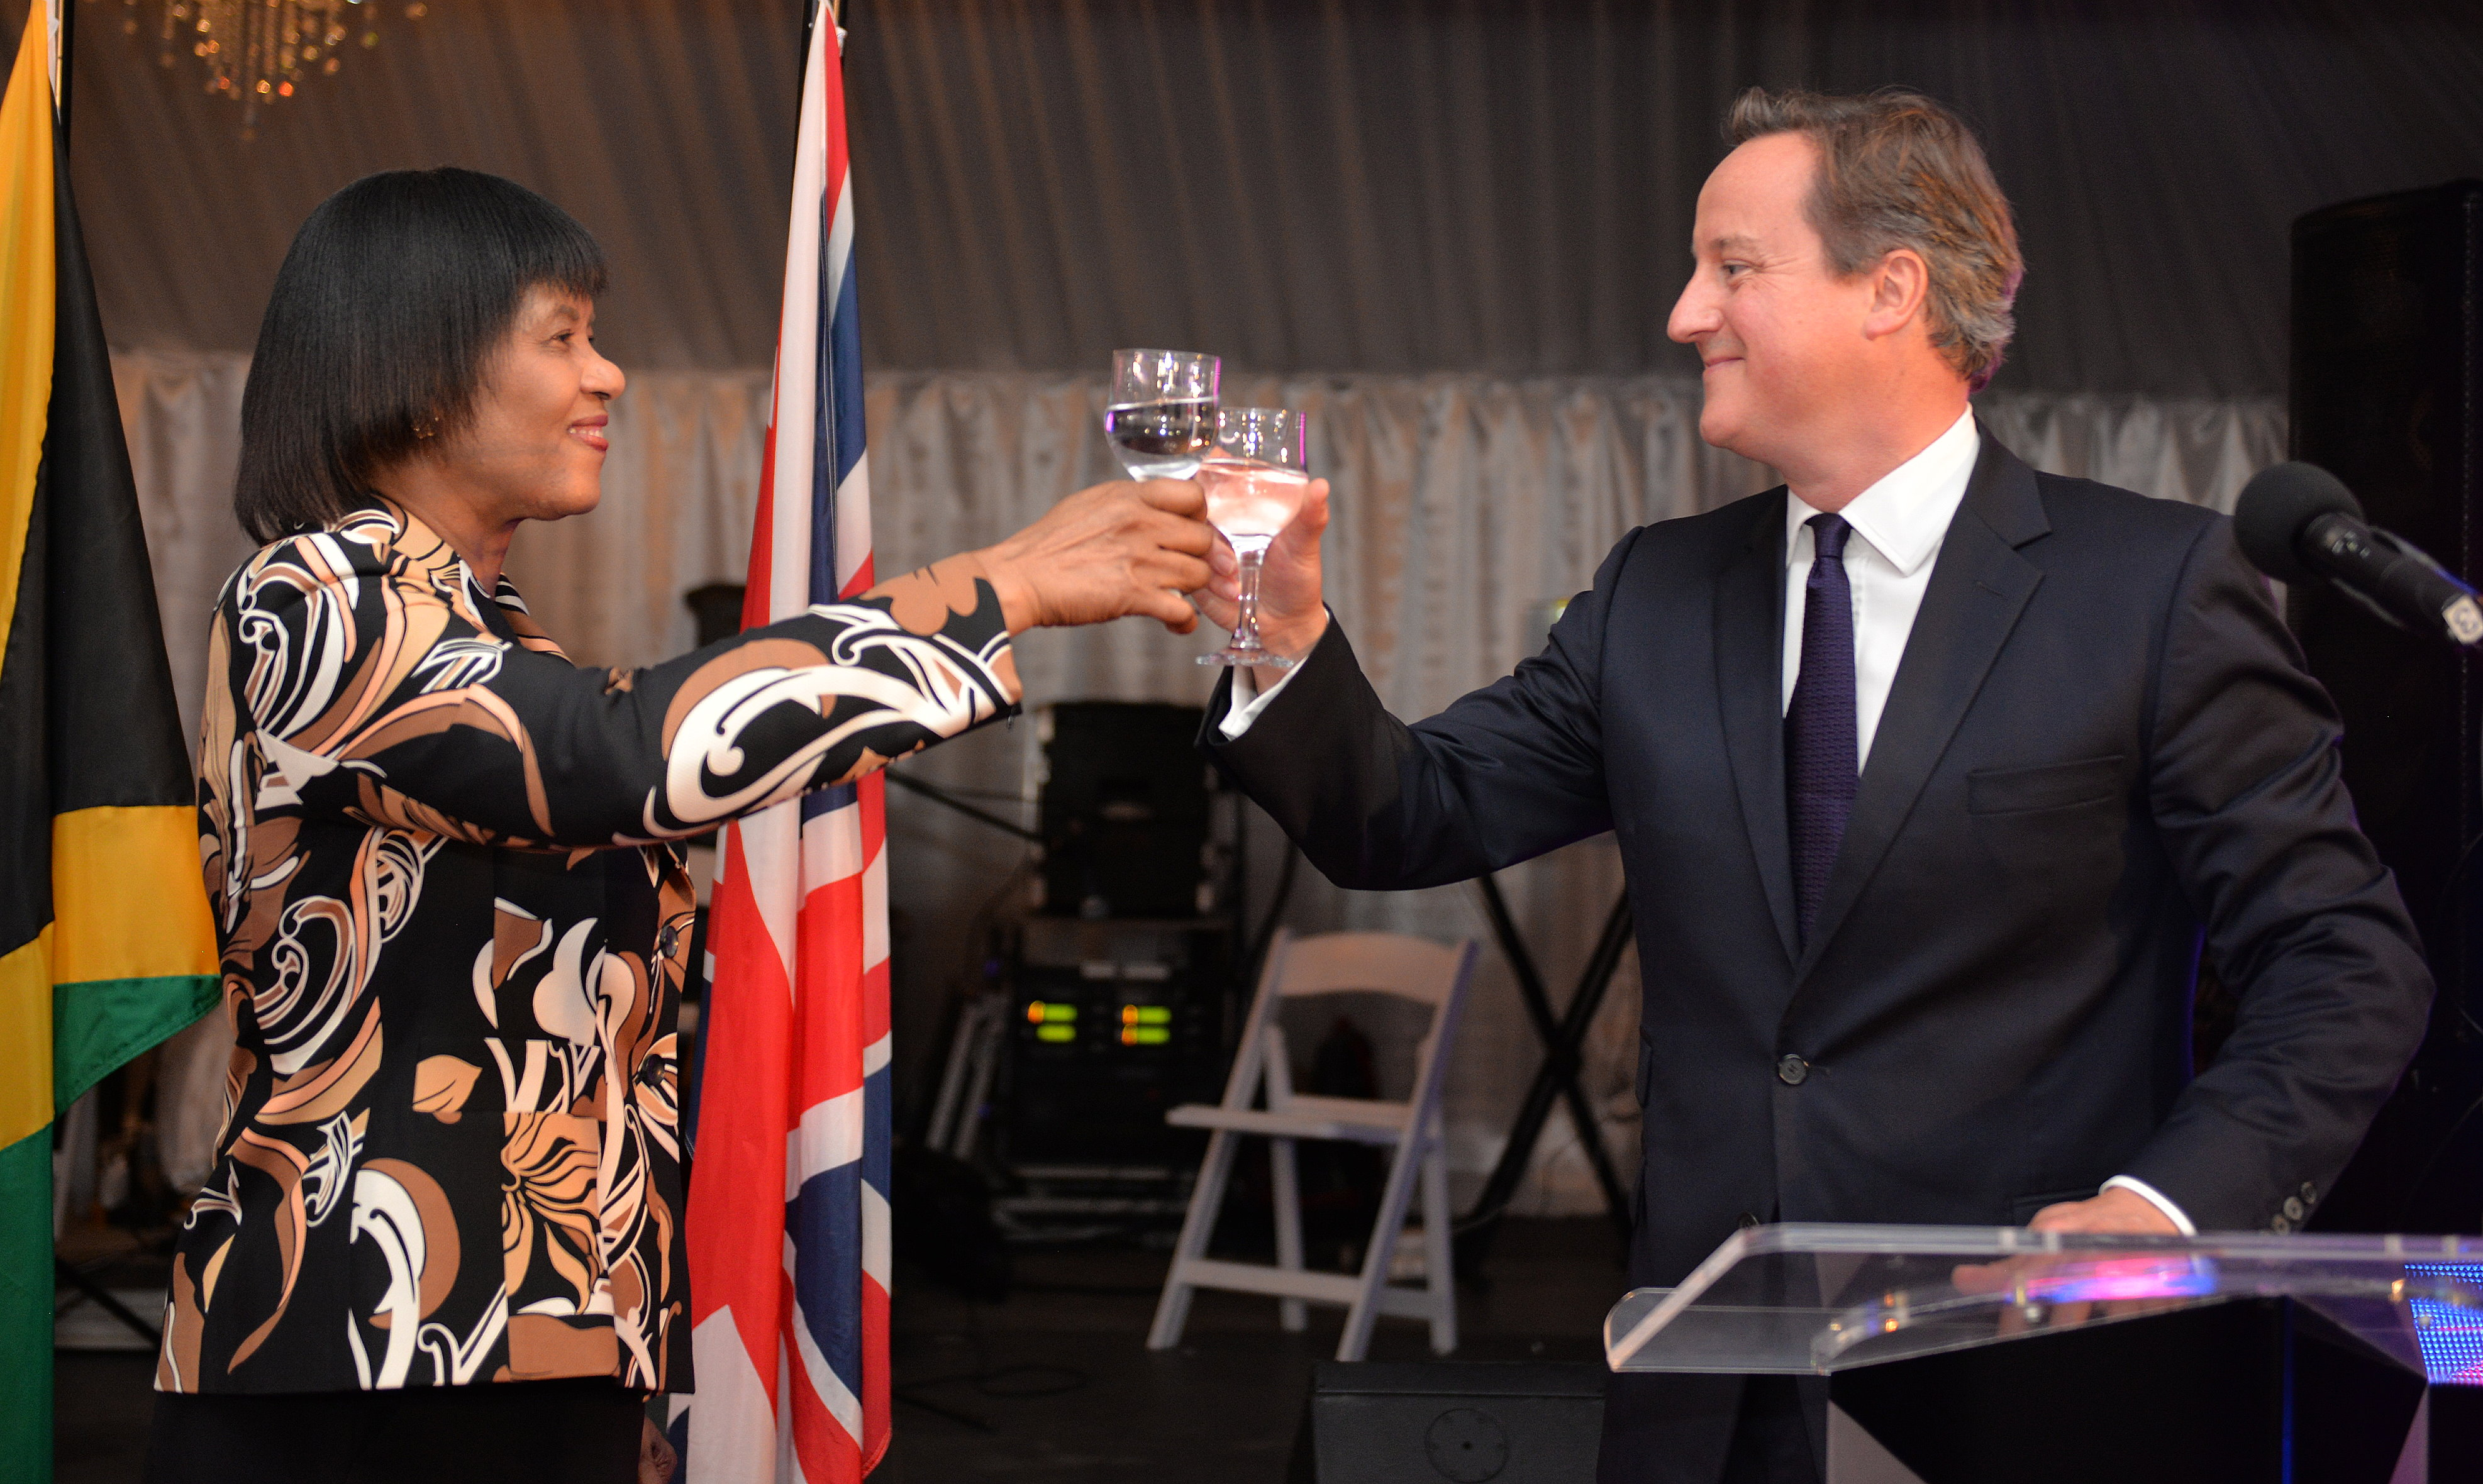 On Eve Of British Pm Camerons Visit >> The Prime Minister Of The United Kingdom David Cameron September